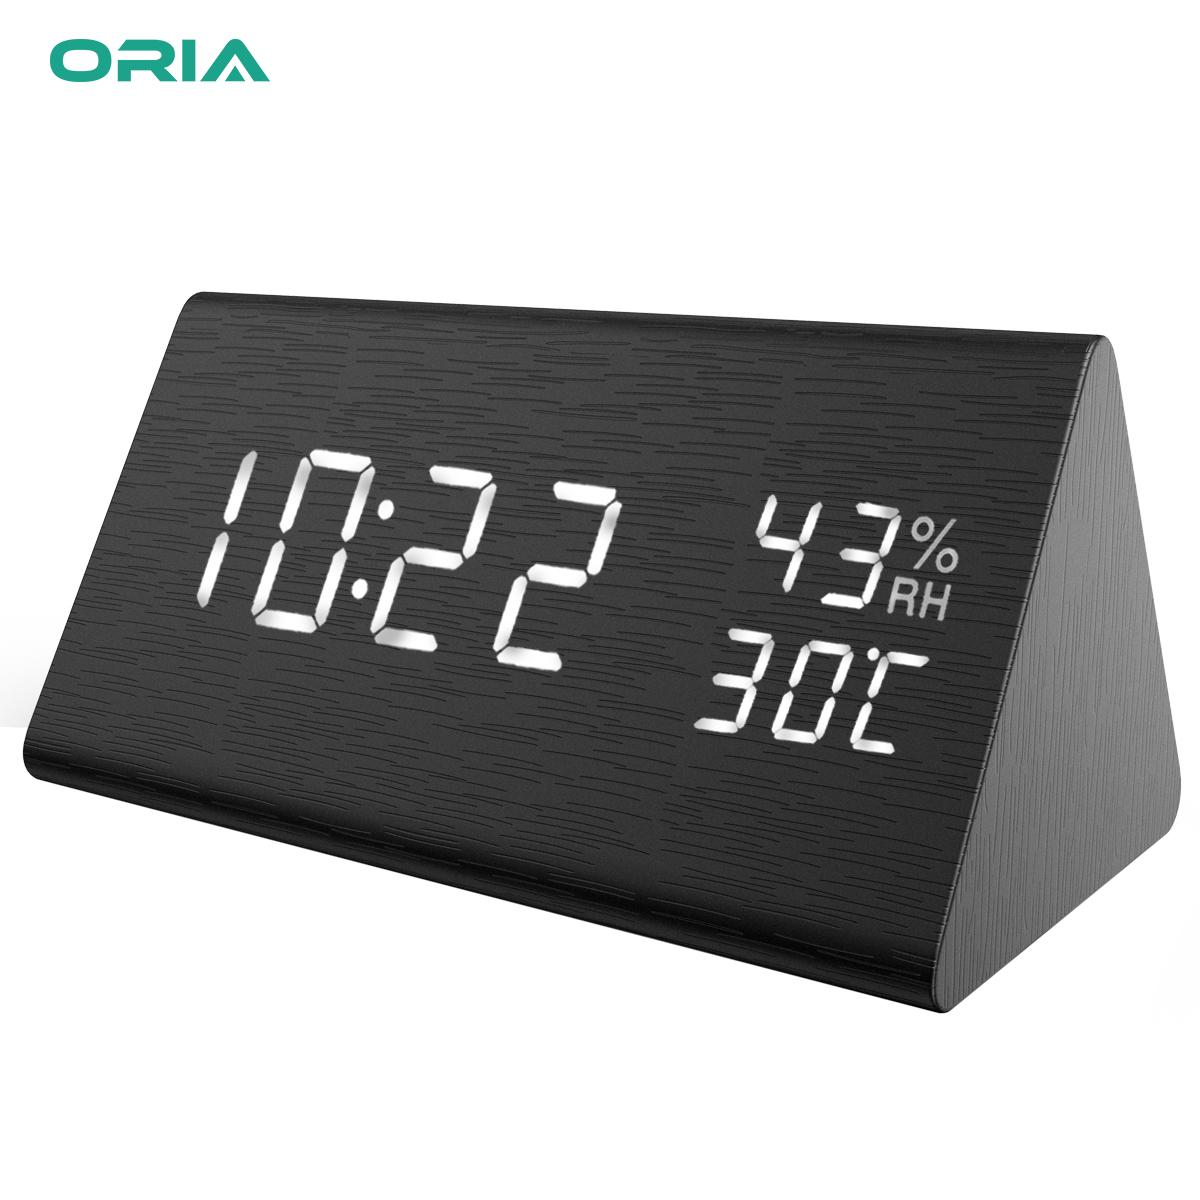 ORIA Wooden Digital Alarm Clock Display Date Temperature & Humidity 3 Levels Brightness Voice Control Smart Voice-Activated with 3 Alarm Sounds for Home Kitchen Bedroom